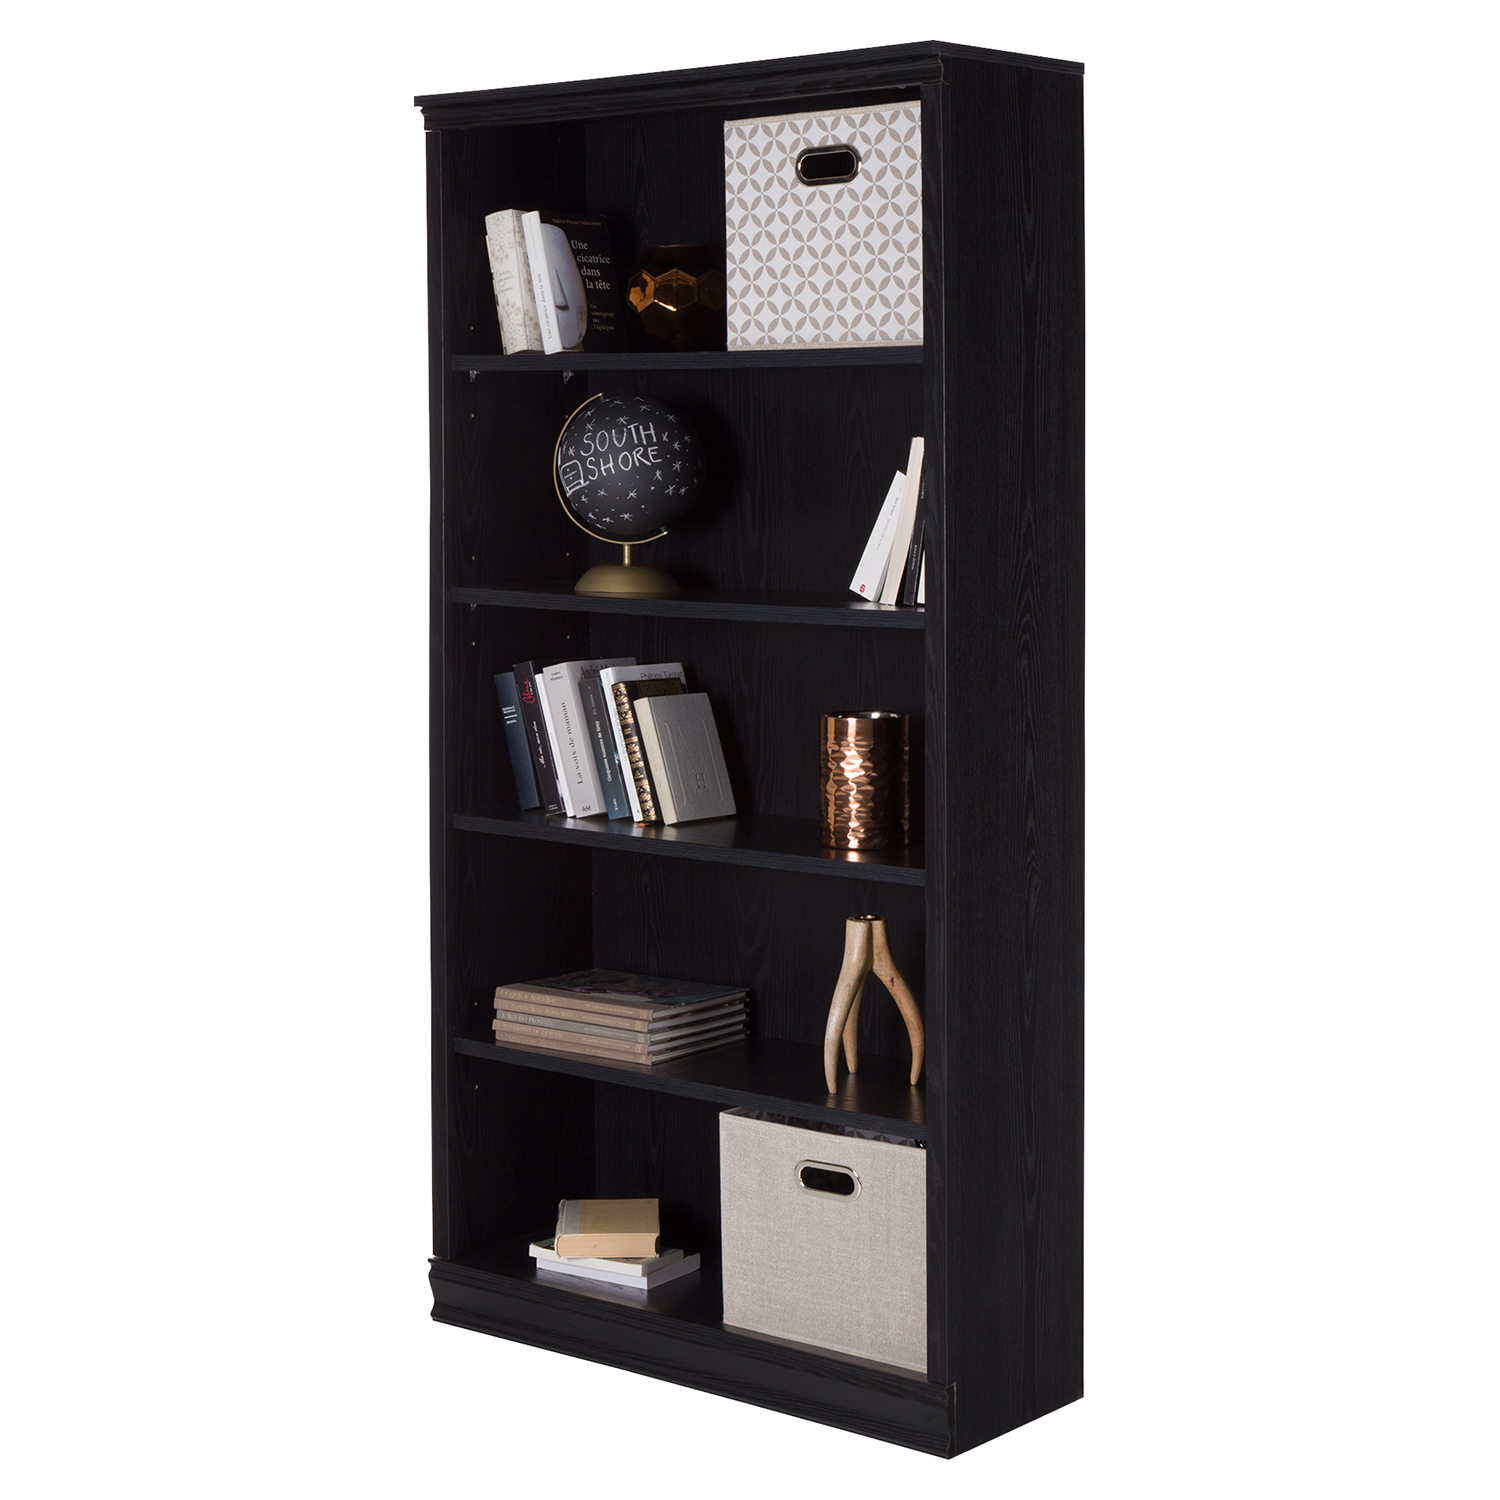 Morgan 5 Shelves Bookcase - Black Oak - SS-10142